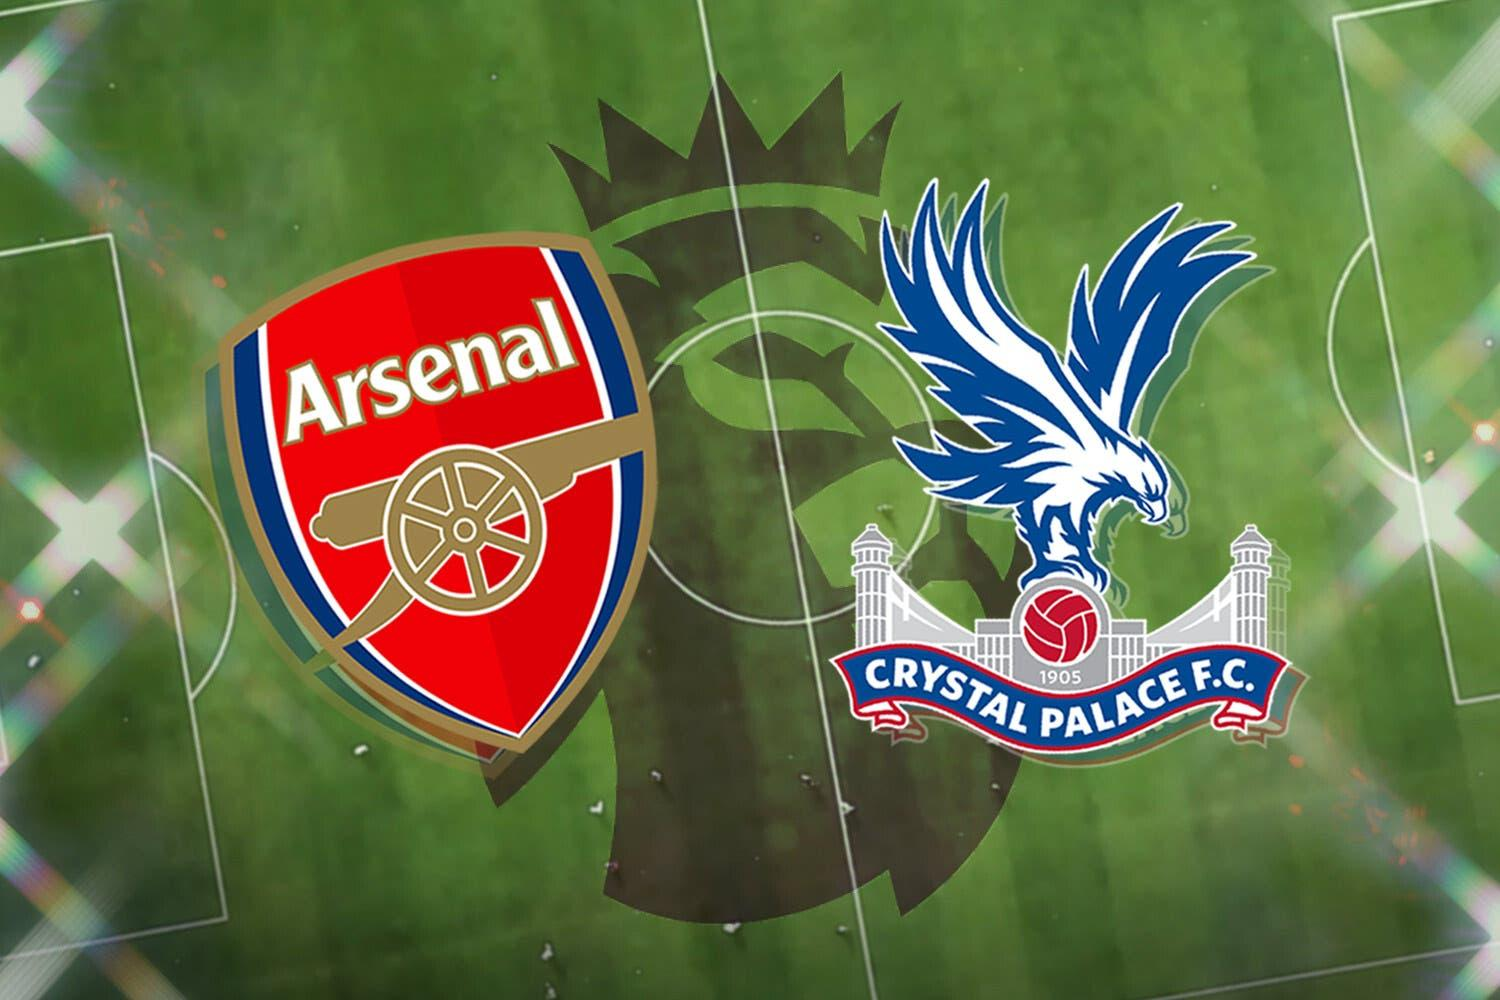 Arsenal vs Crystal Palace: how much will the rivals score?